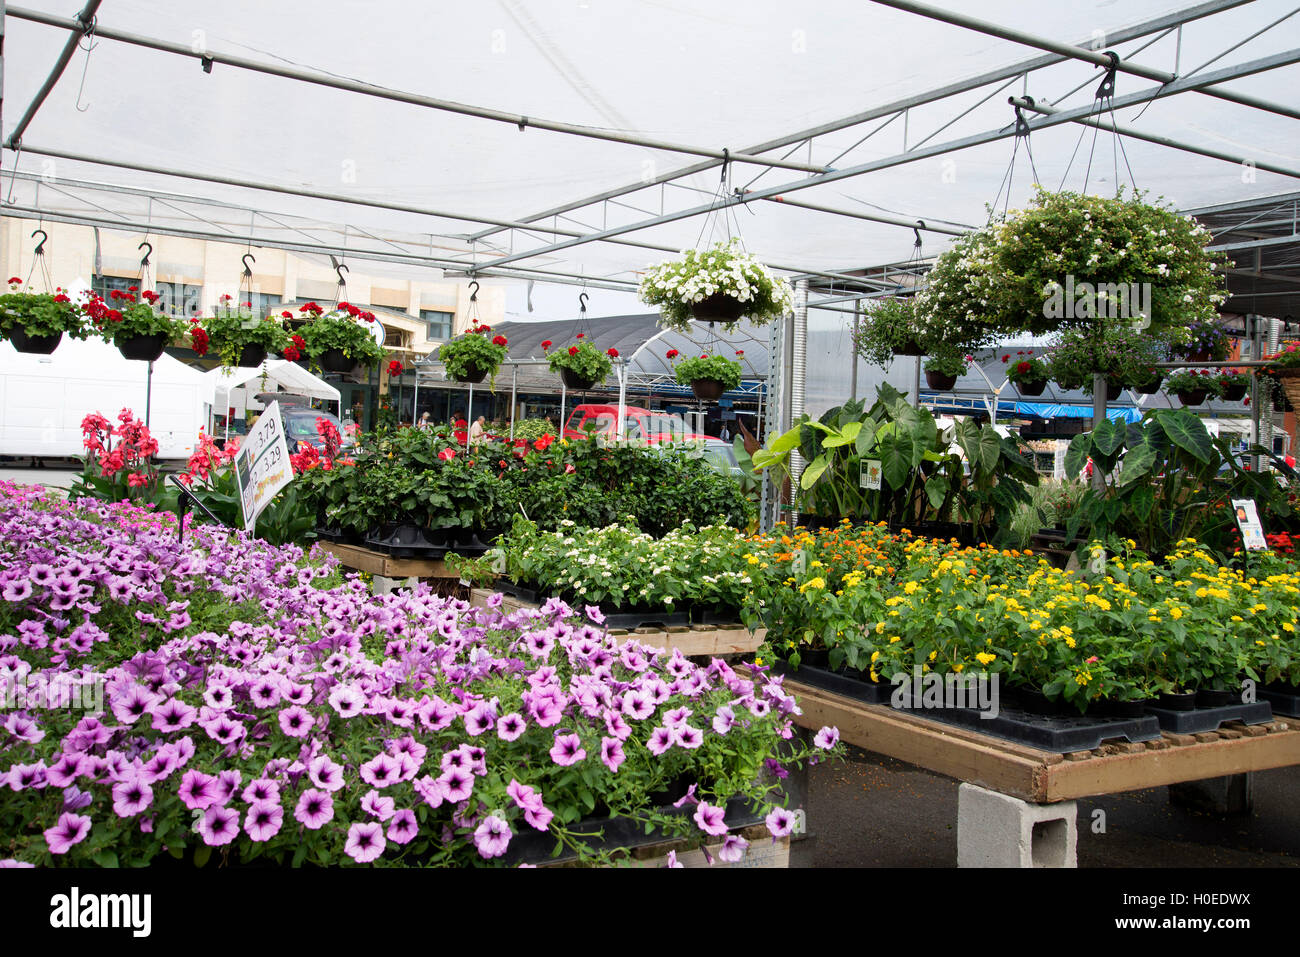 Greenhouse with flowers and plants in Atwater Farmer's Market, Montreral. - Stock Image